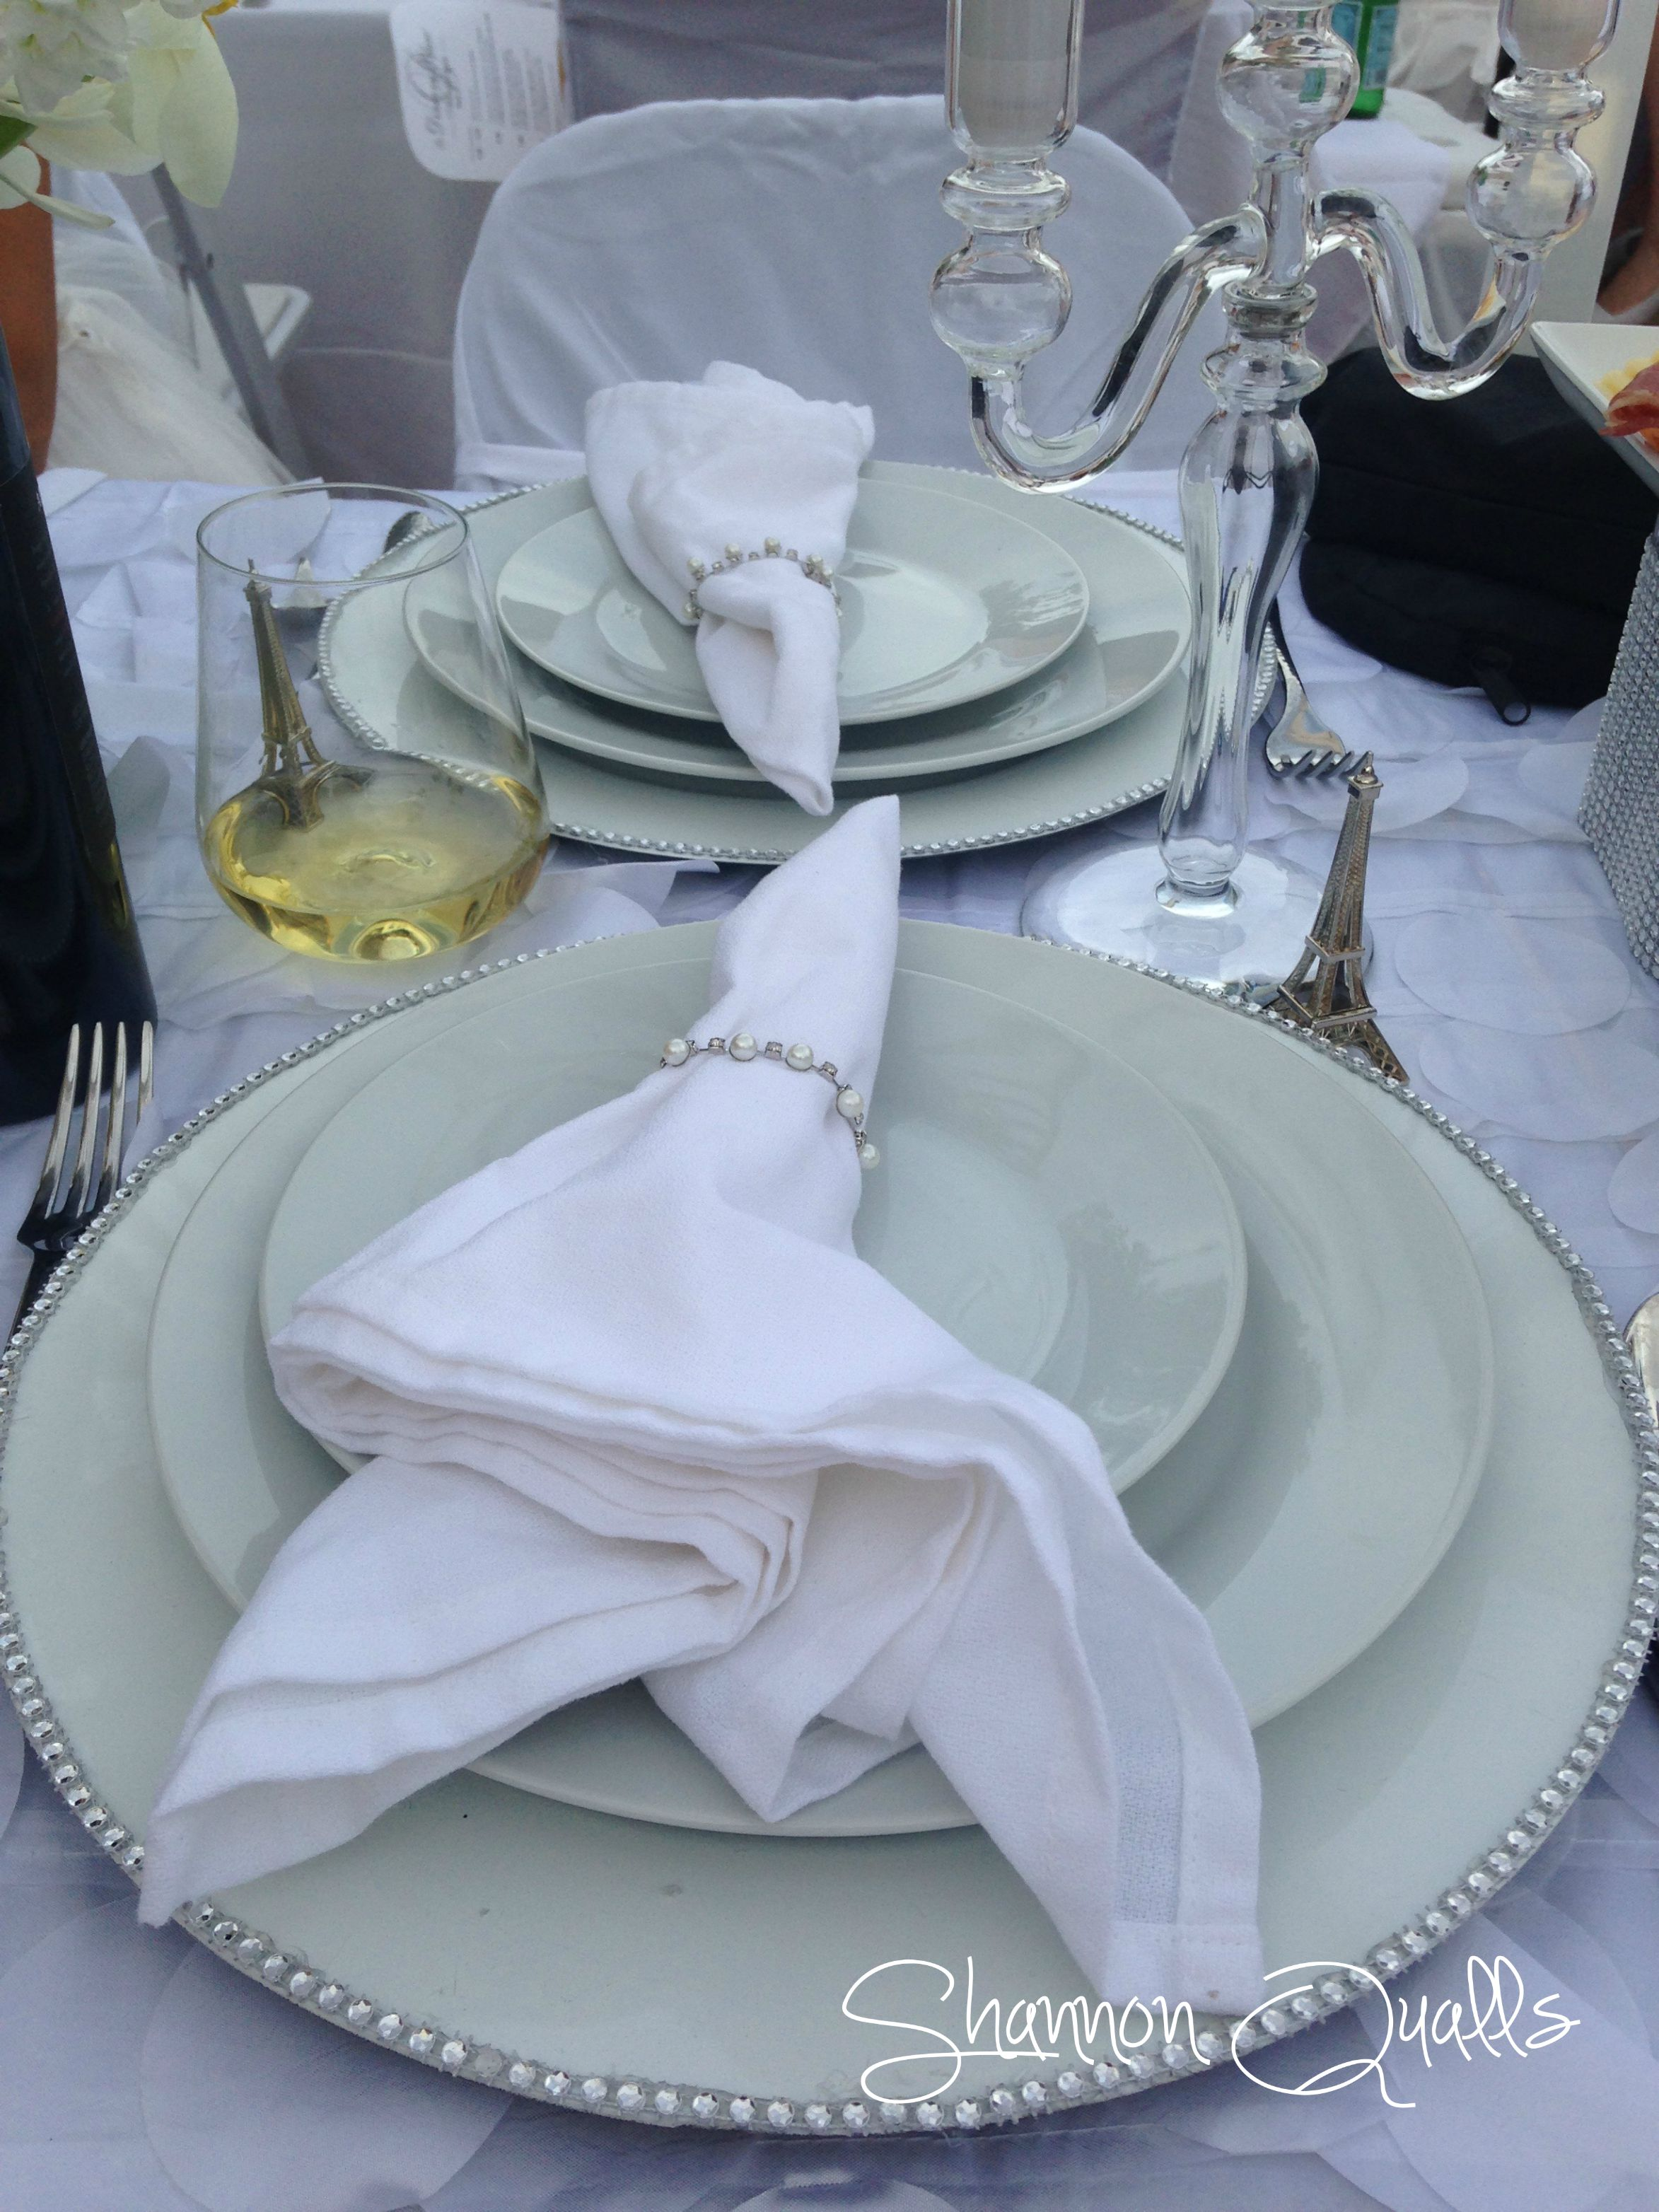 Diner en Blanc Tabletop Place Setting from shannonqualls.com